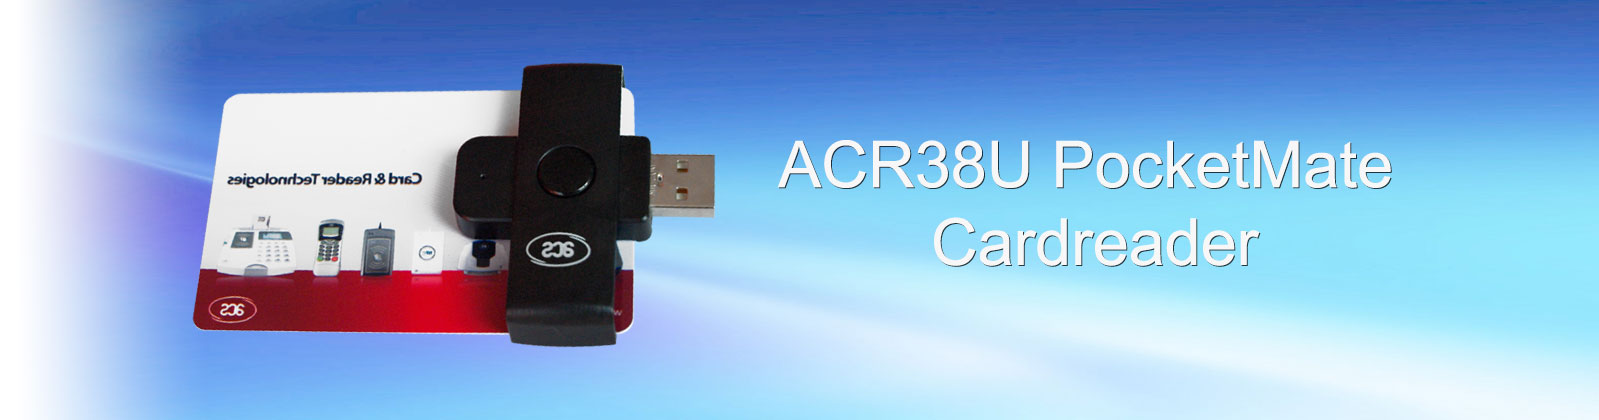 ACR38U Pocket Mate cardreader